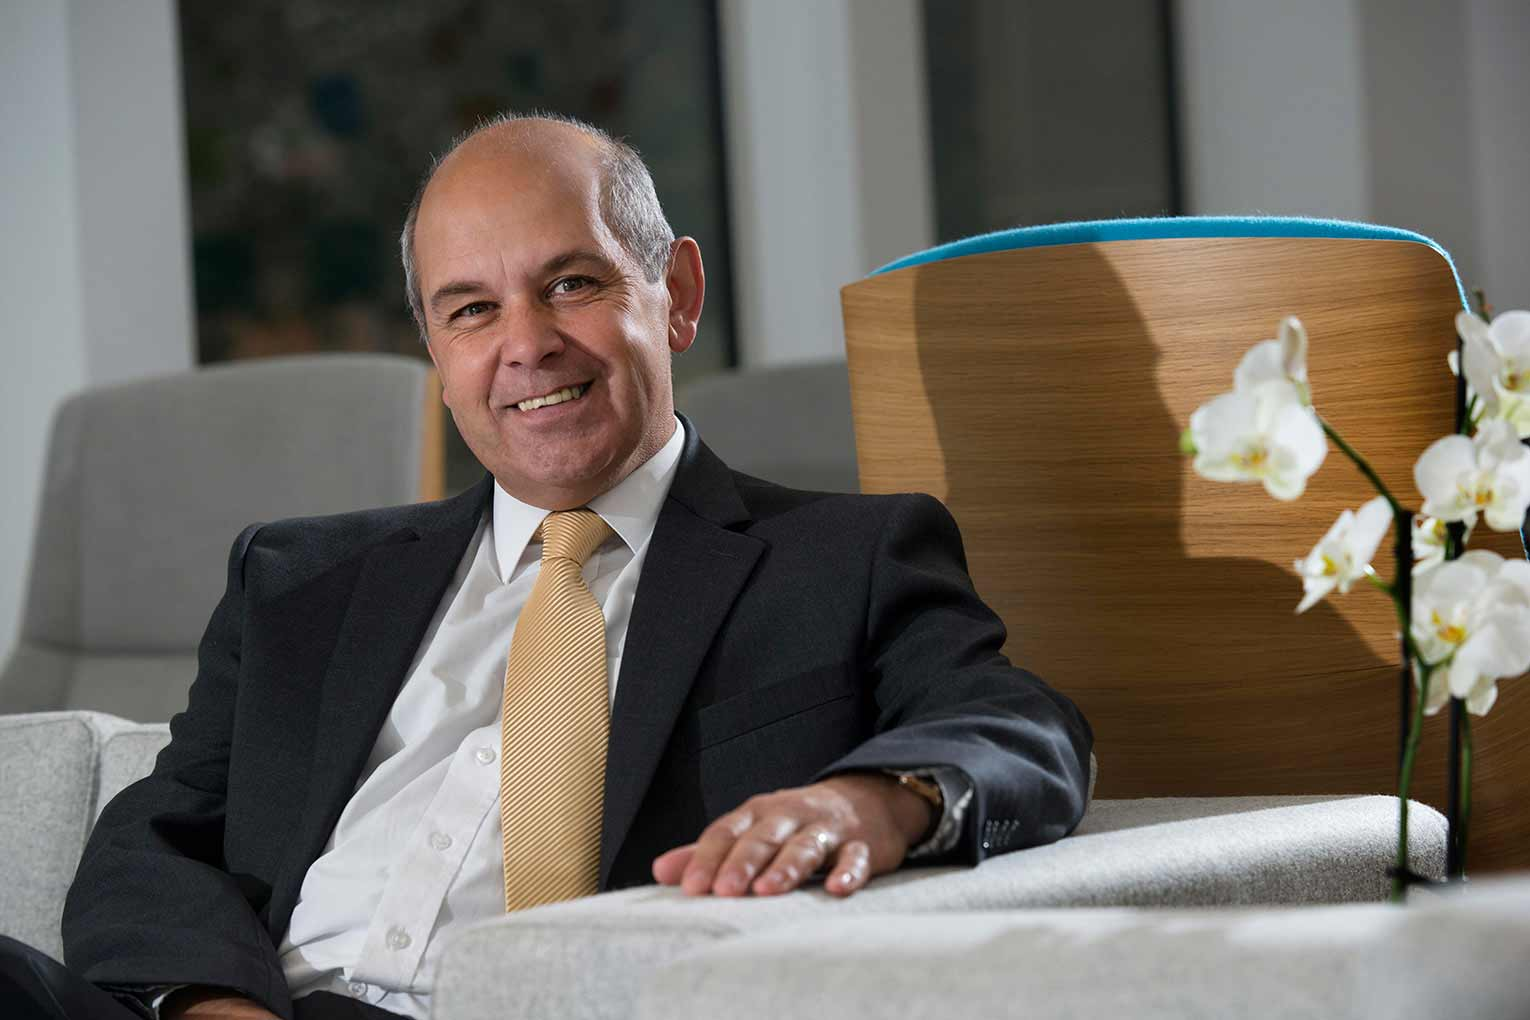 Accord cuts buy-to-let remortgage rates